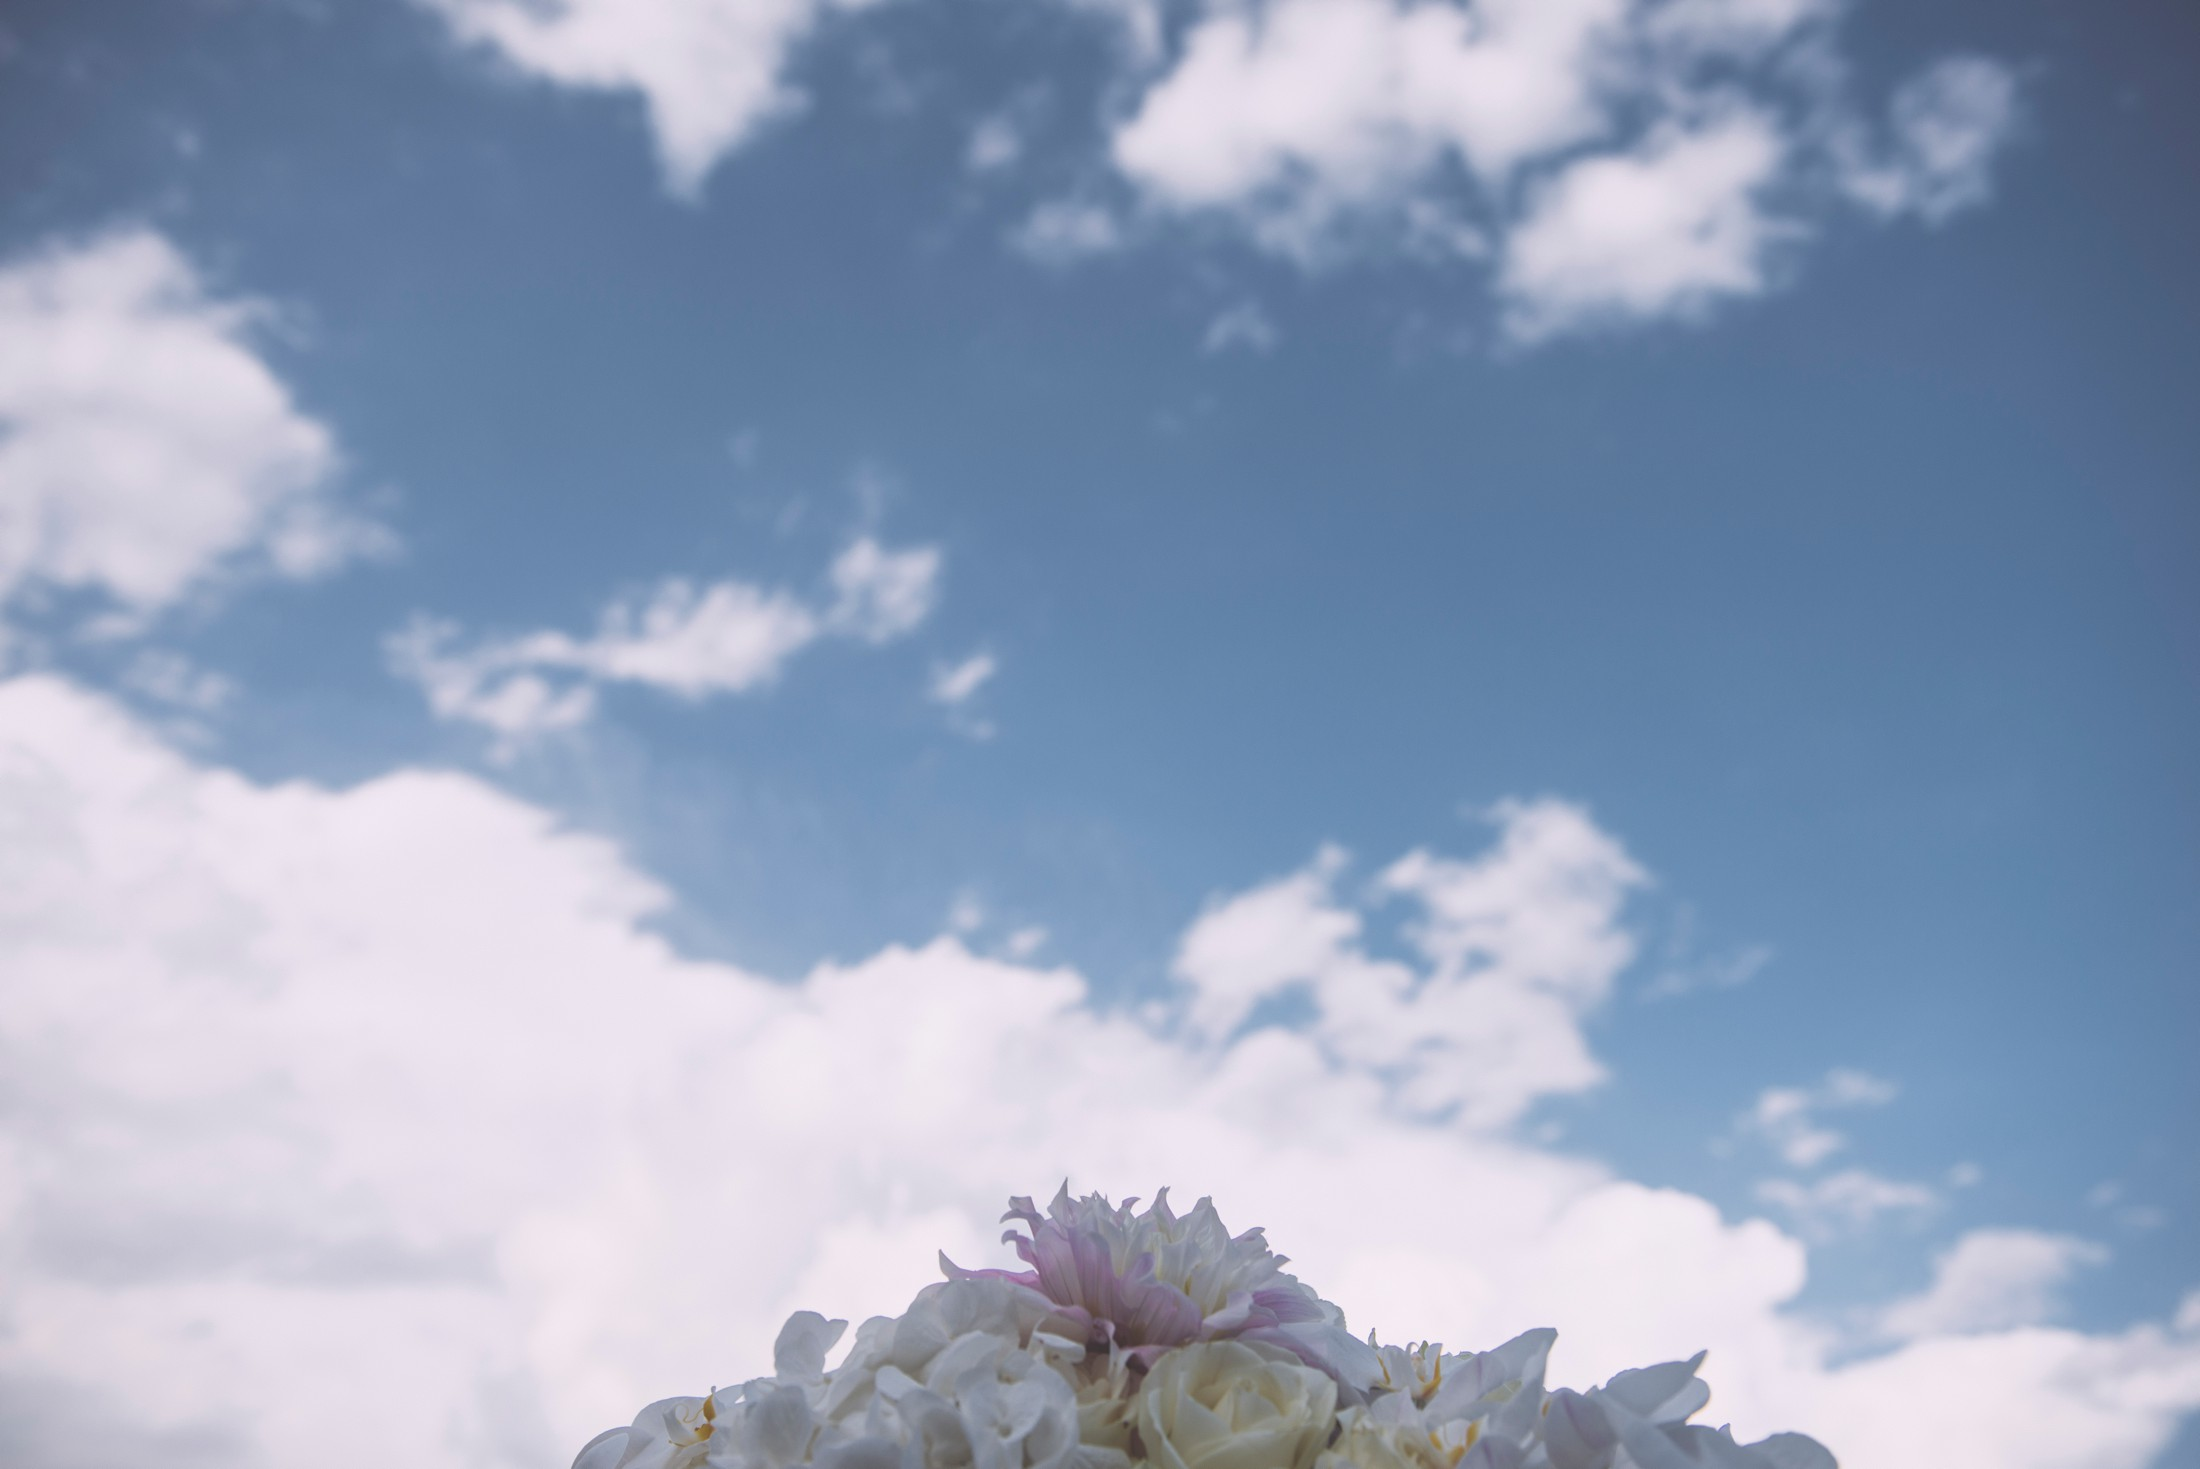 detail of wedding flower decor against the blue sky